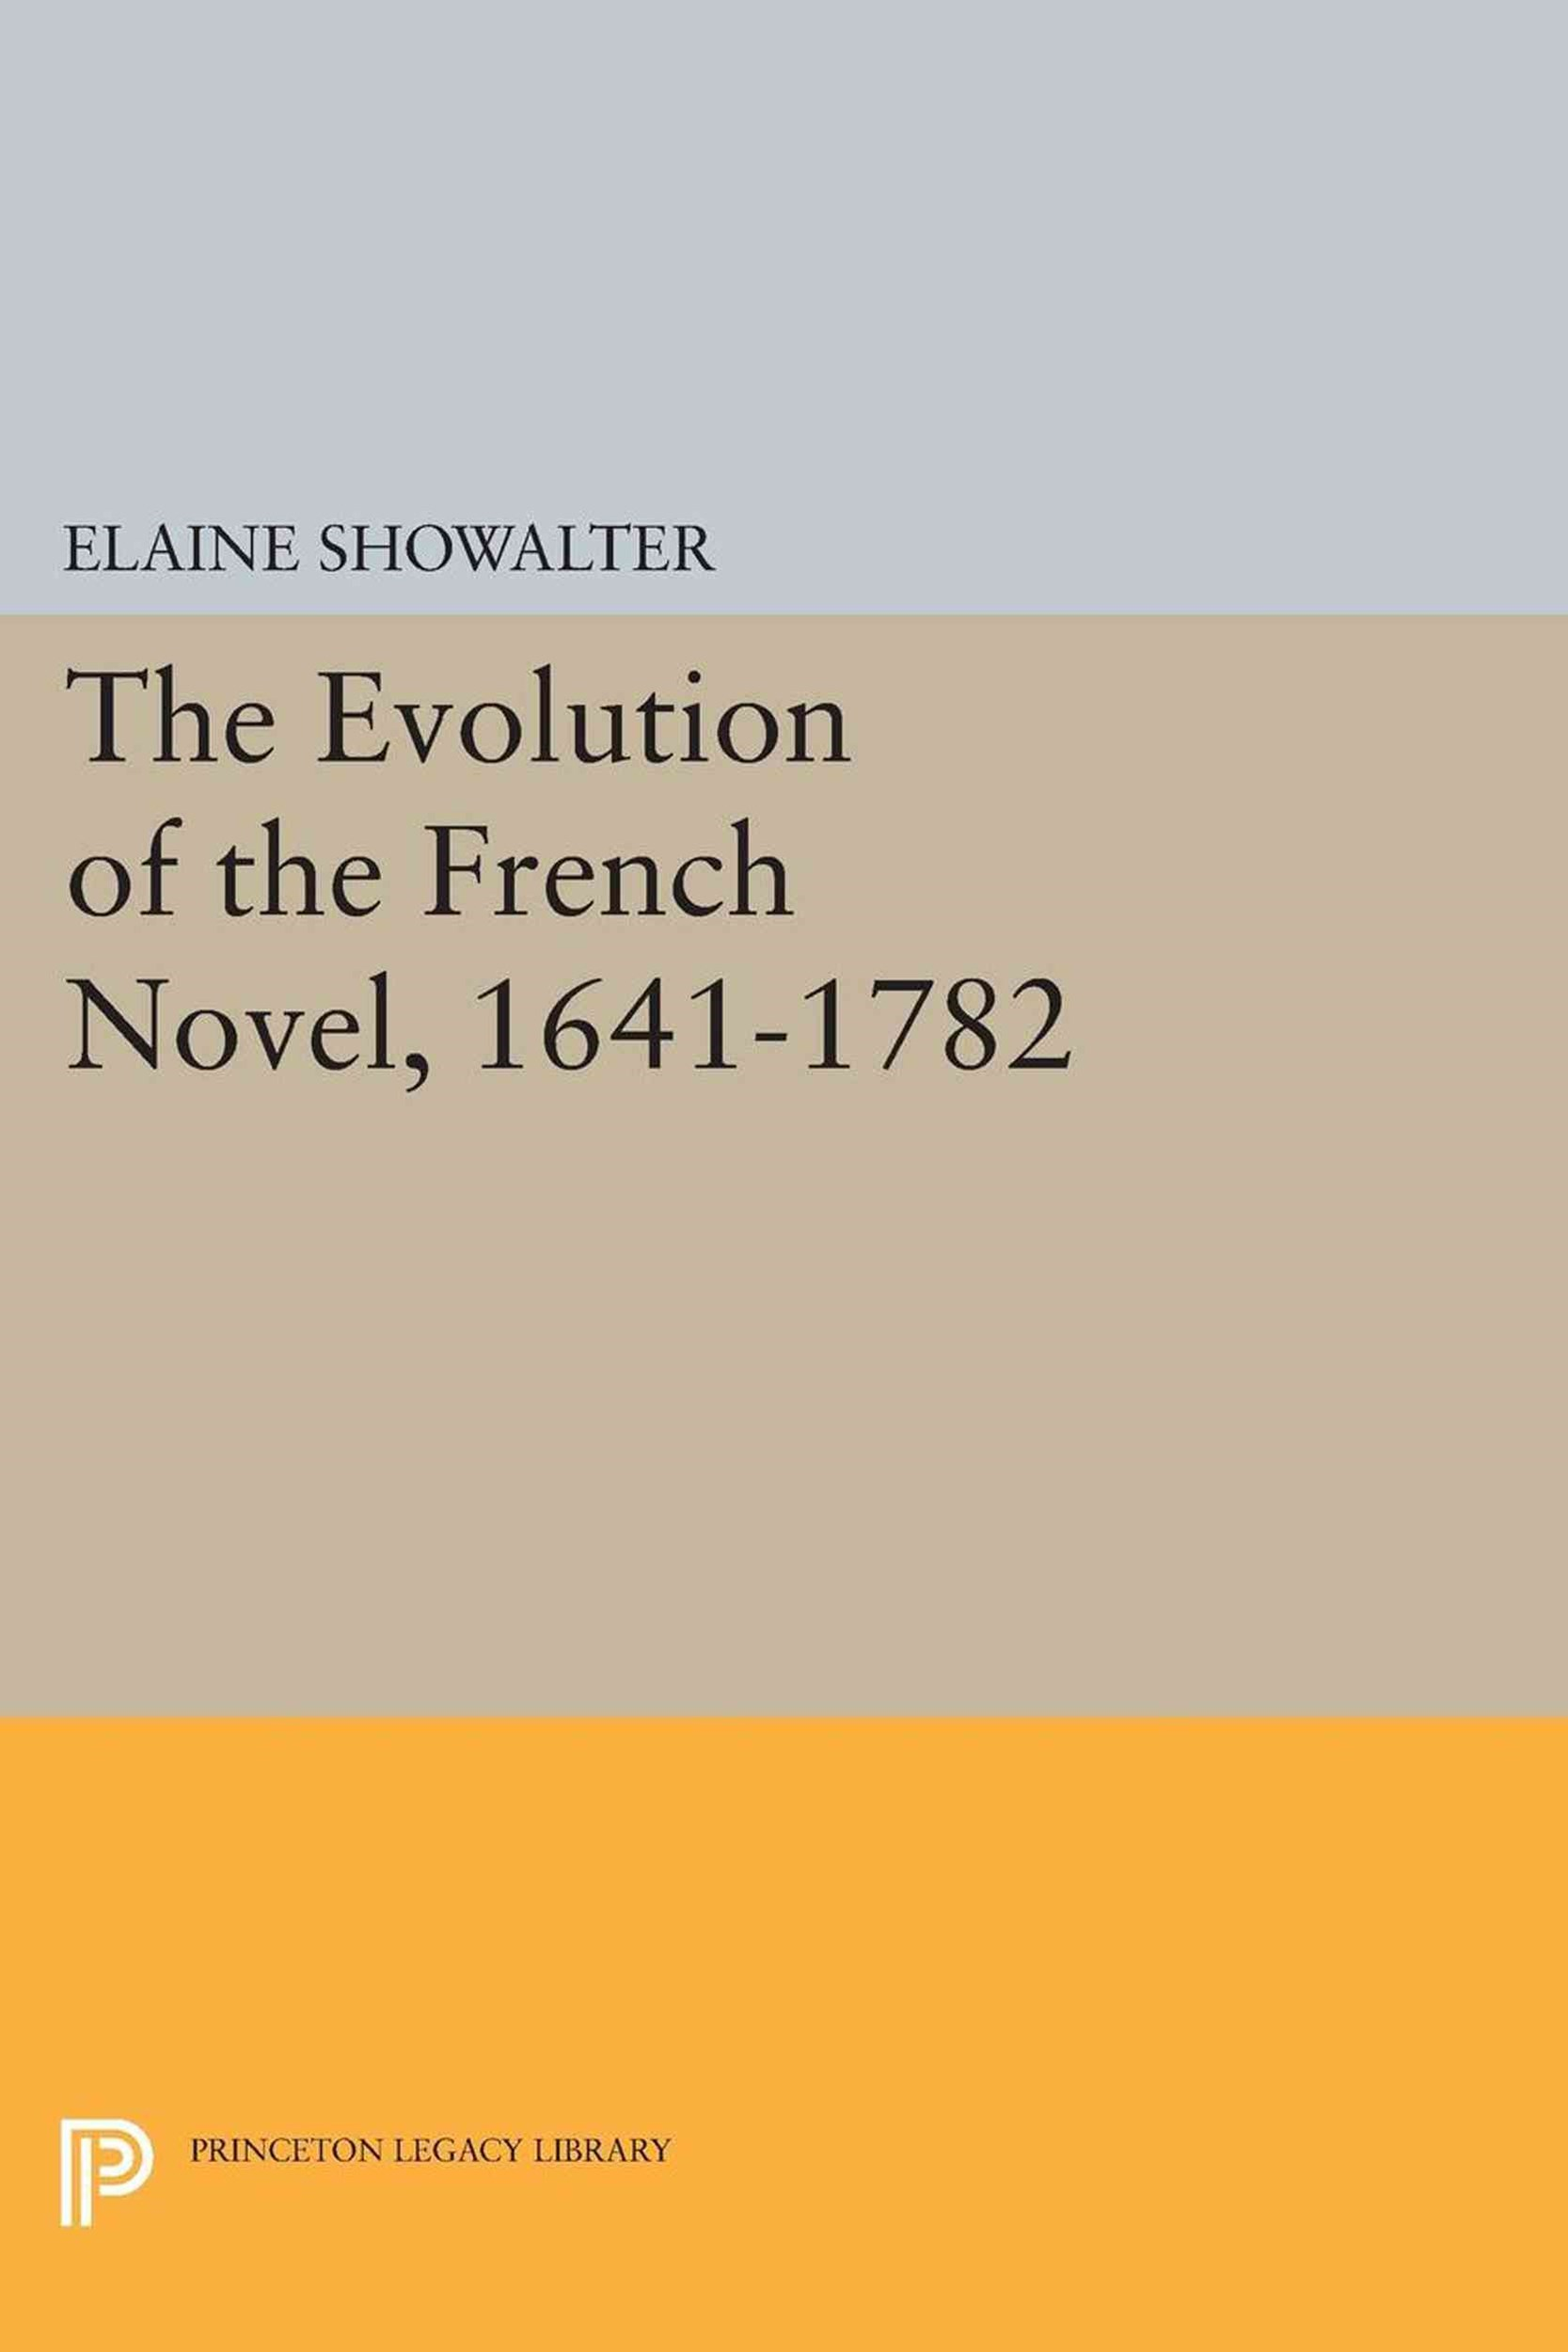 The Evolution of the French Novel, 1641-1782